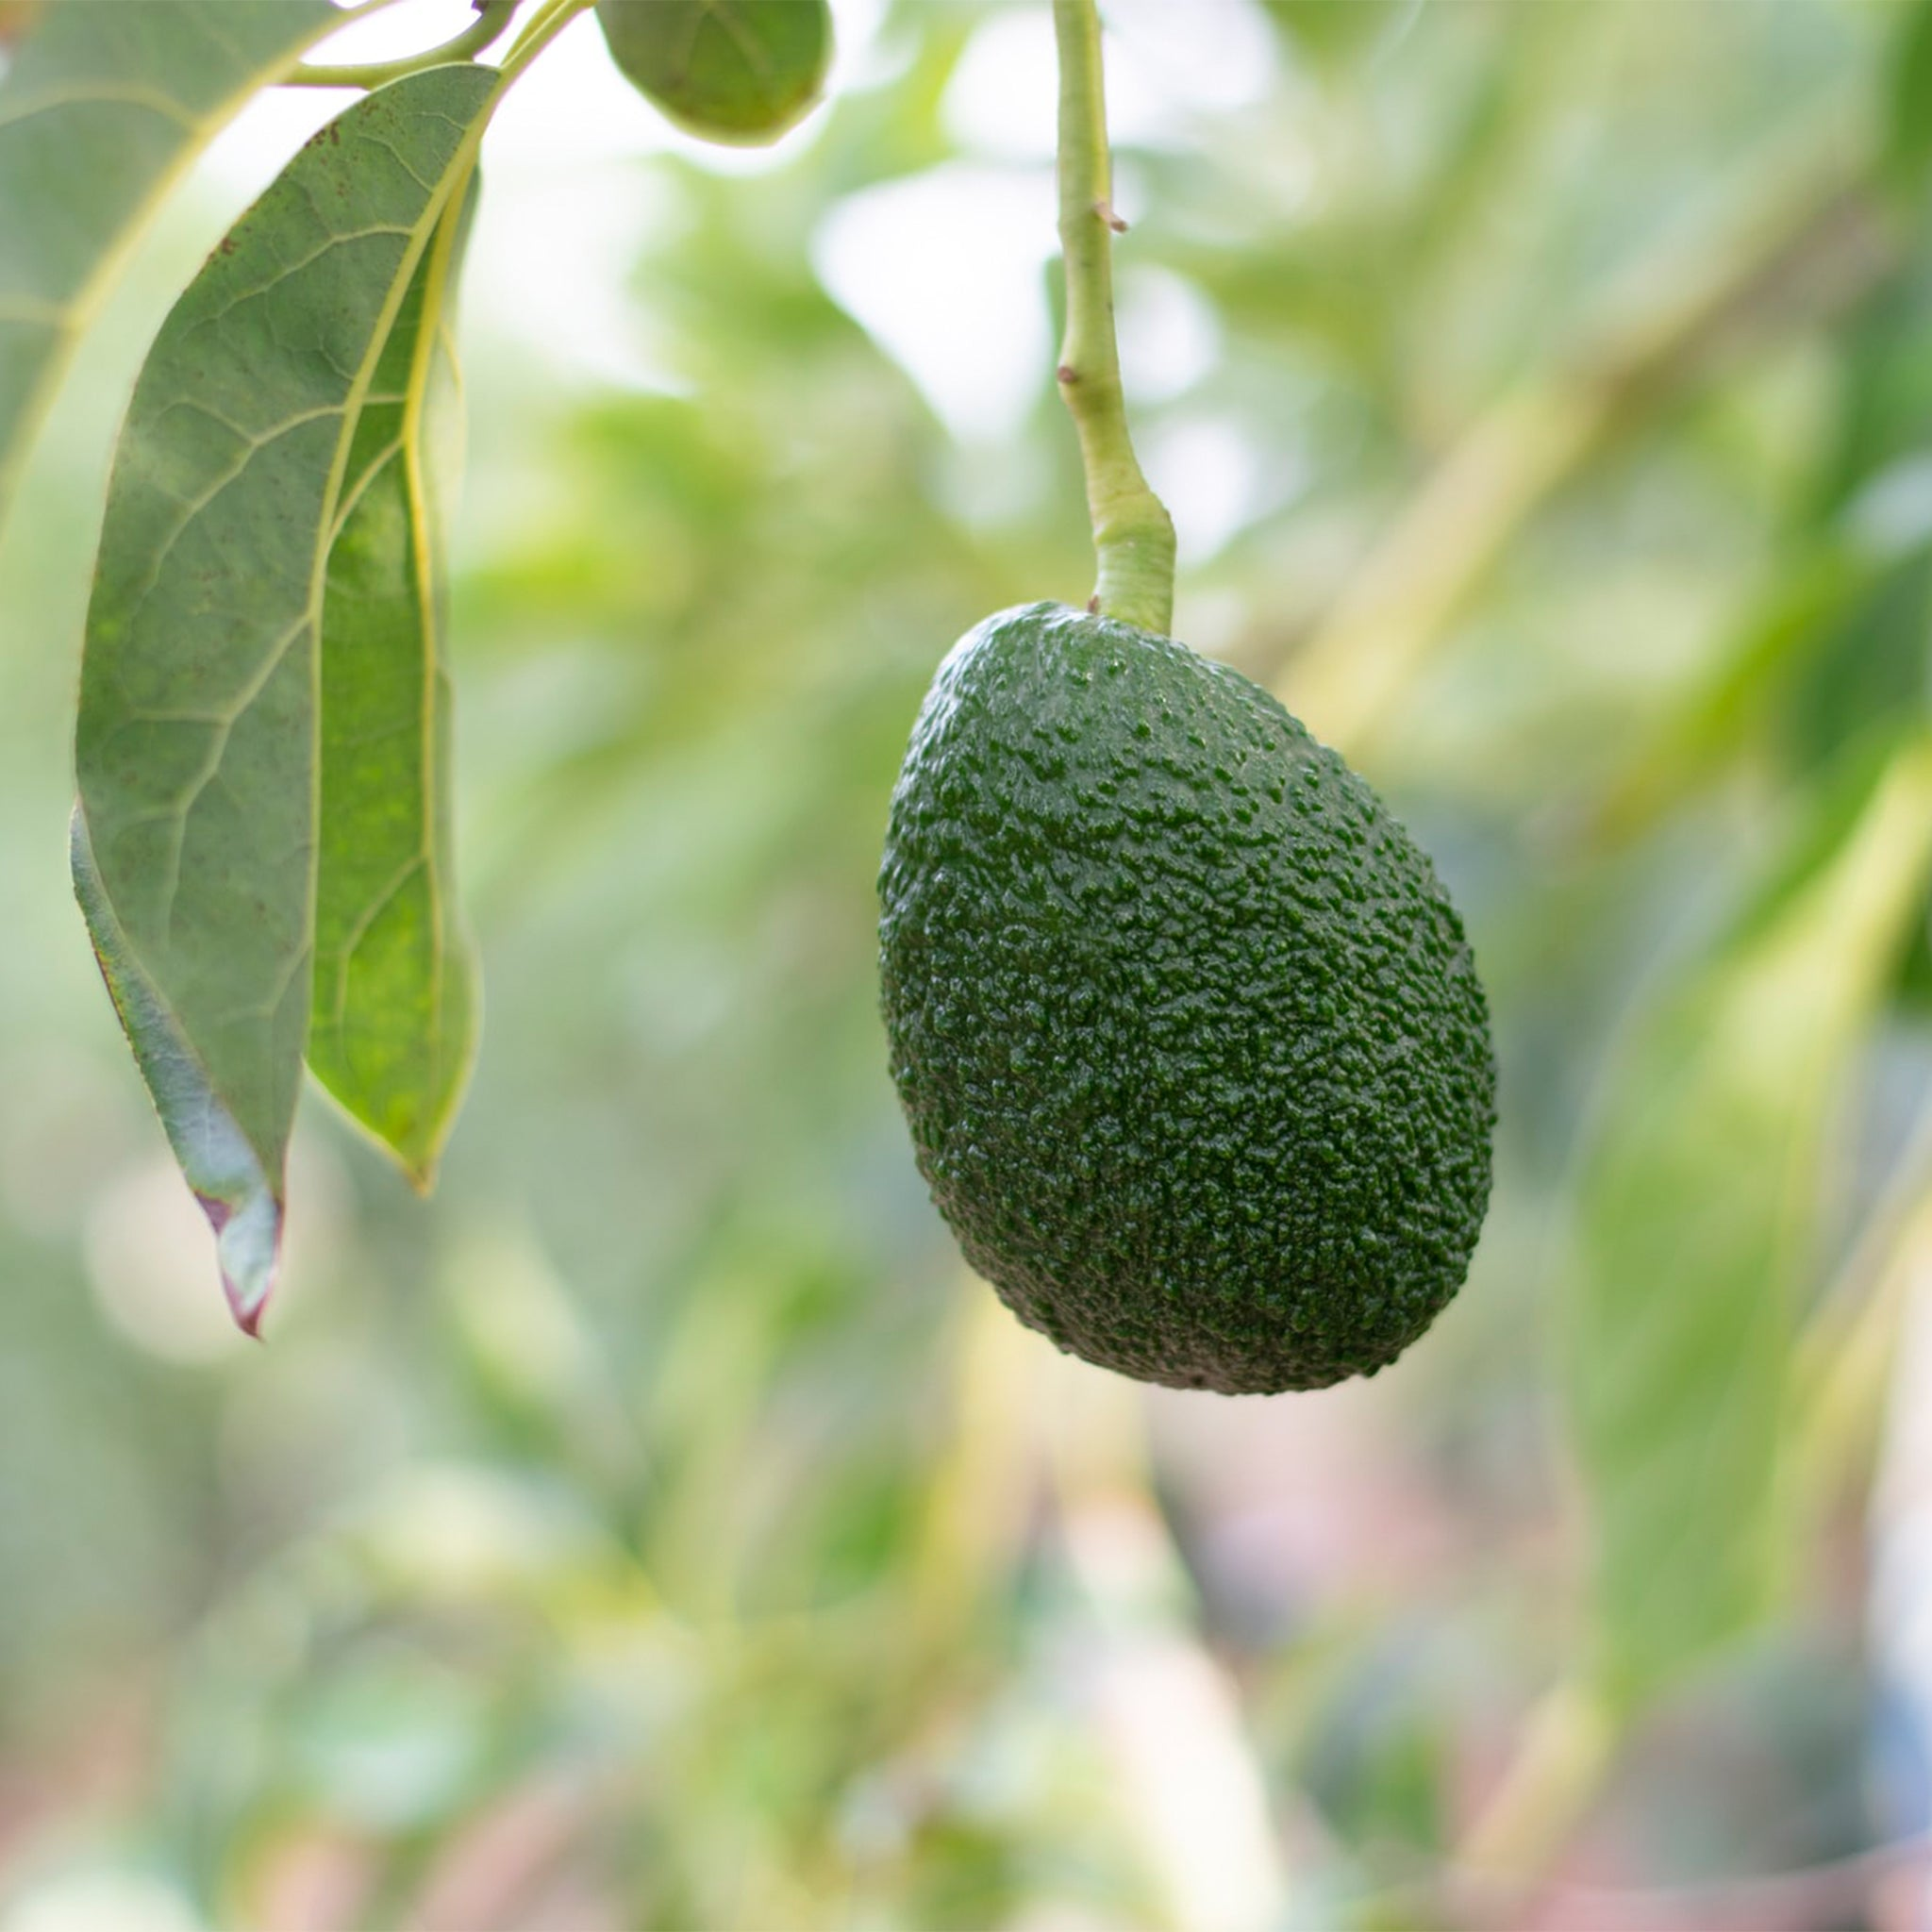 image of avocado fruit hanging from tree.